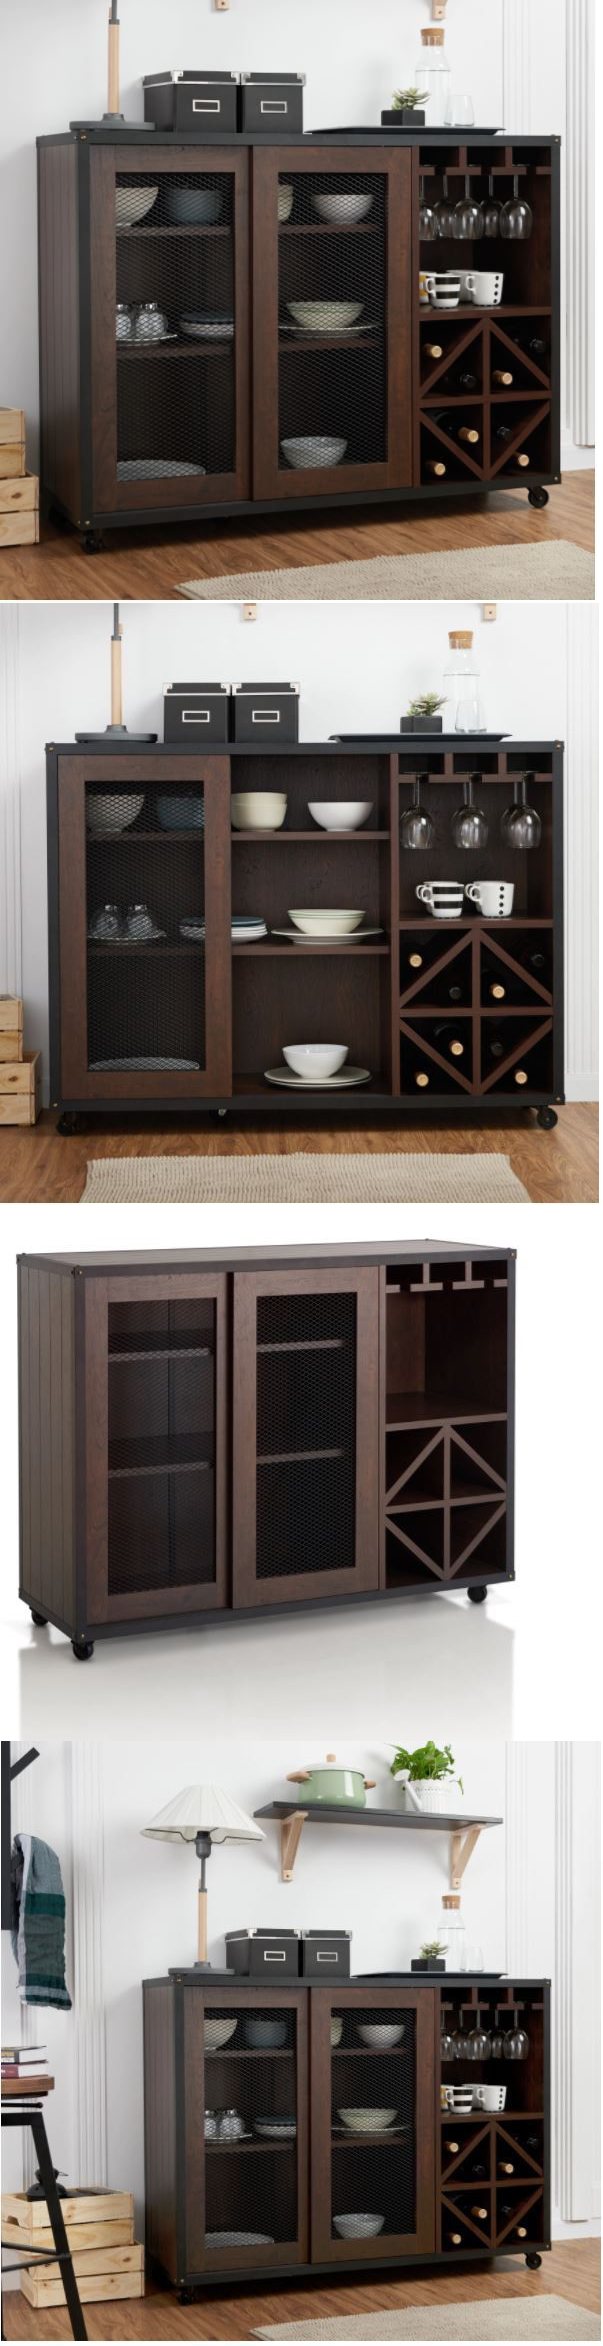 Sideboards and buffets liquor storage cabinet home mini bar